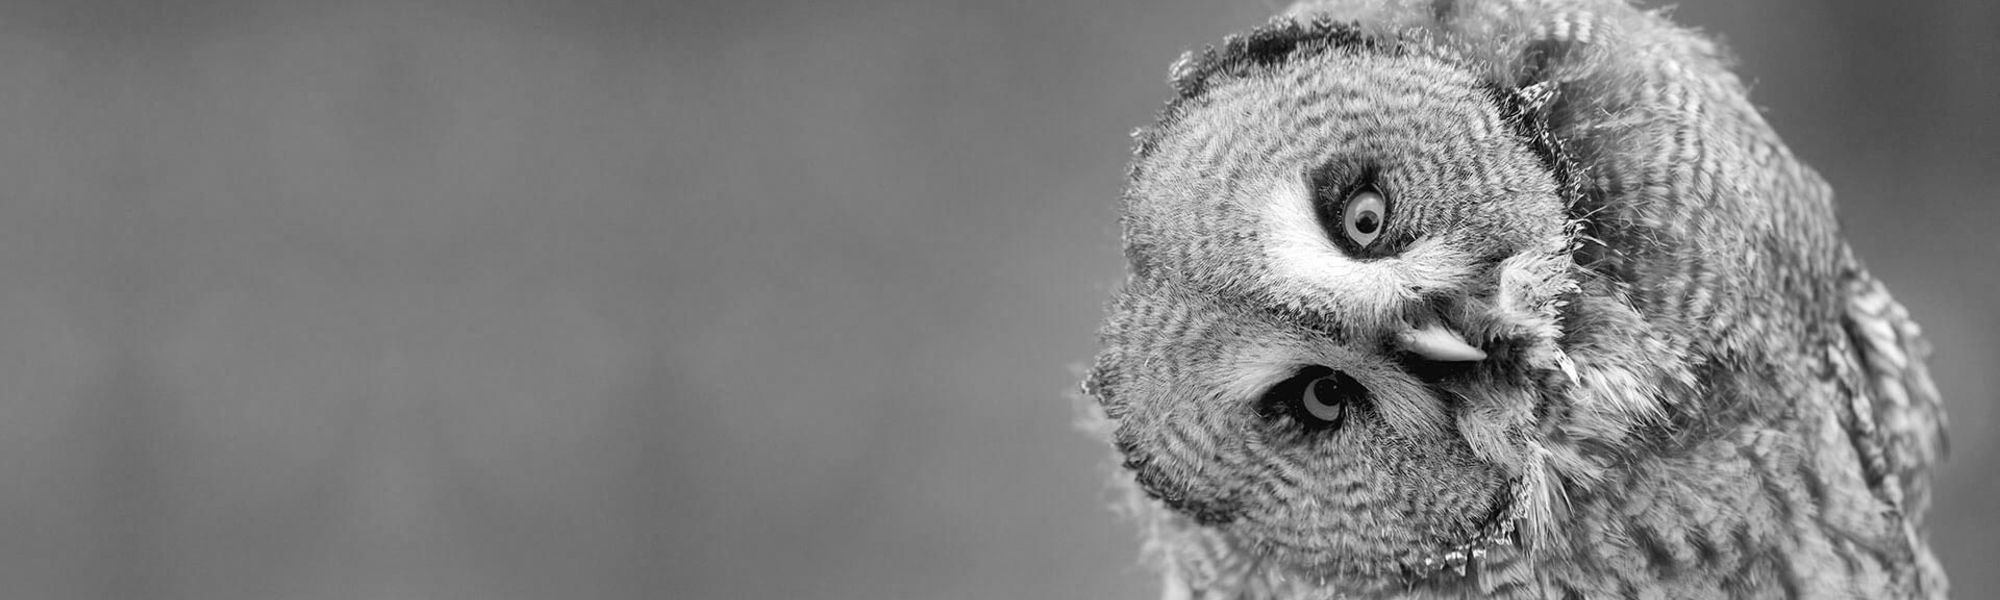 owl, wise owl, wise one, 45 years plus, work, job search, employment, career